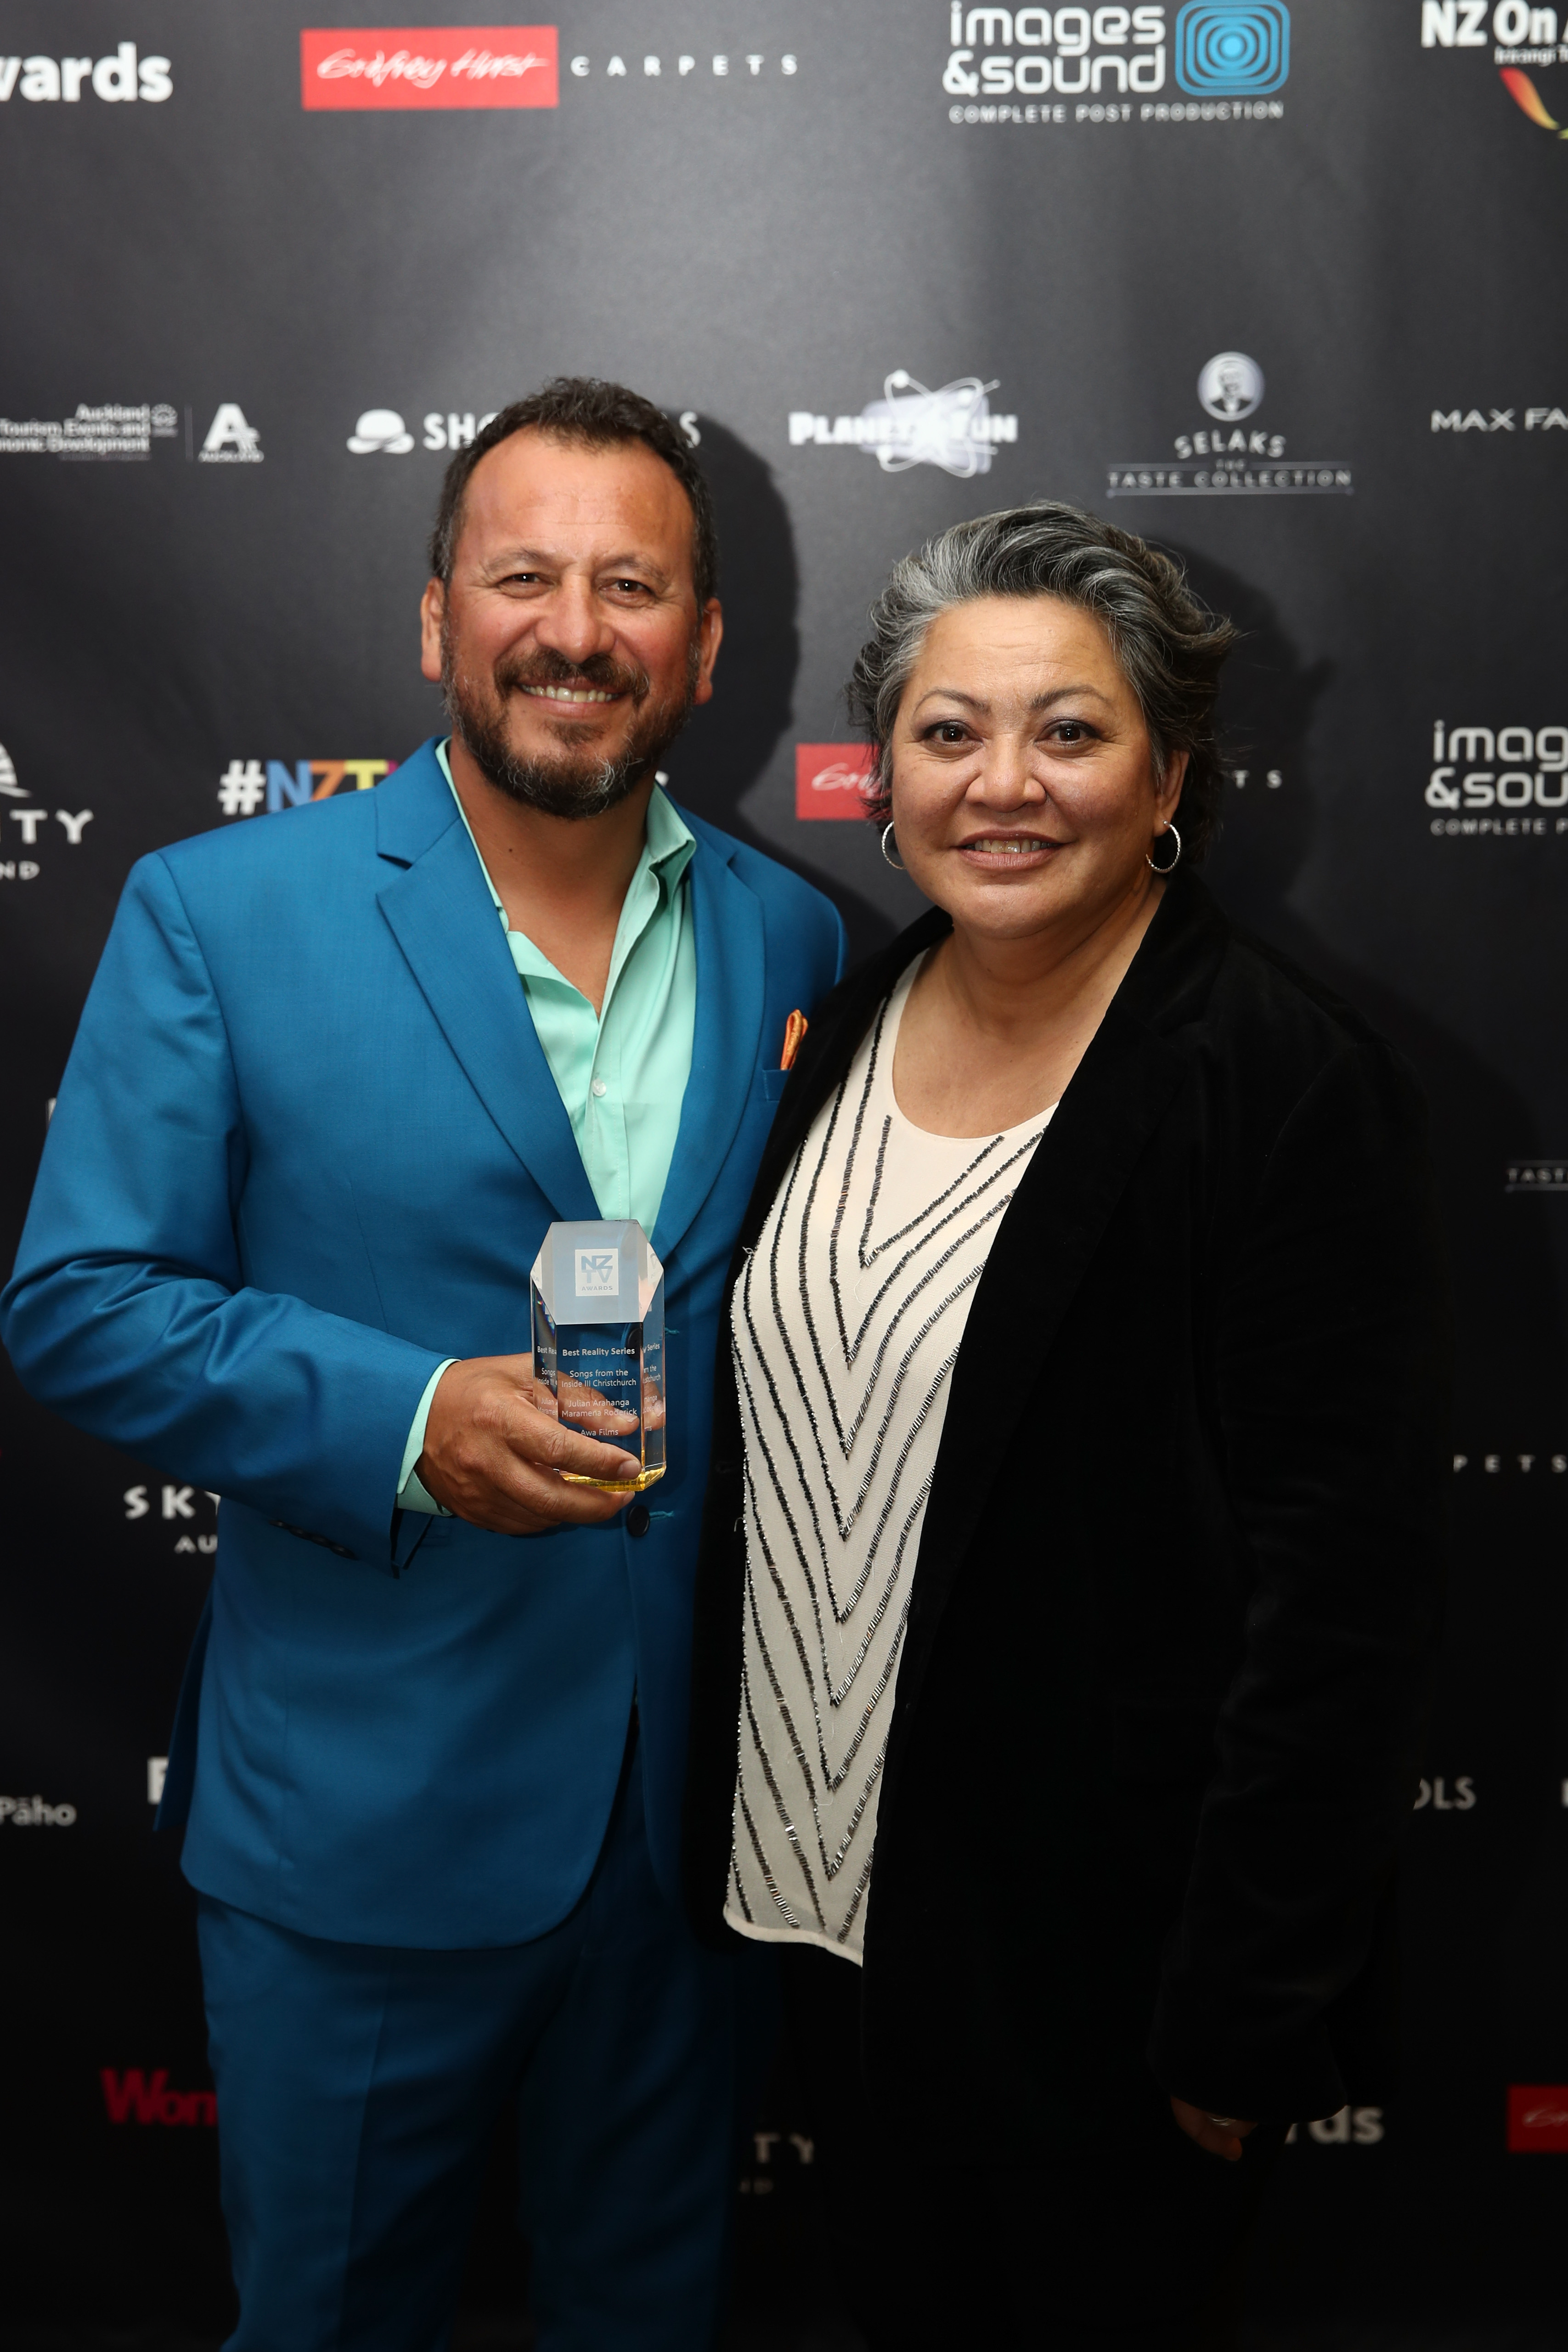 Julian Arahanga and Maramena Roderick with the award for Best Reality Series during the NZ TV Awards at Sky City on November 30, 2017 in Auckland, New Zealand.  (Photo by Phil Walter/Getty Images)